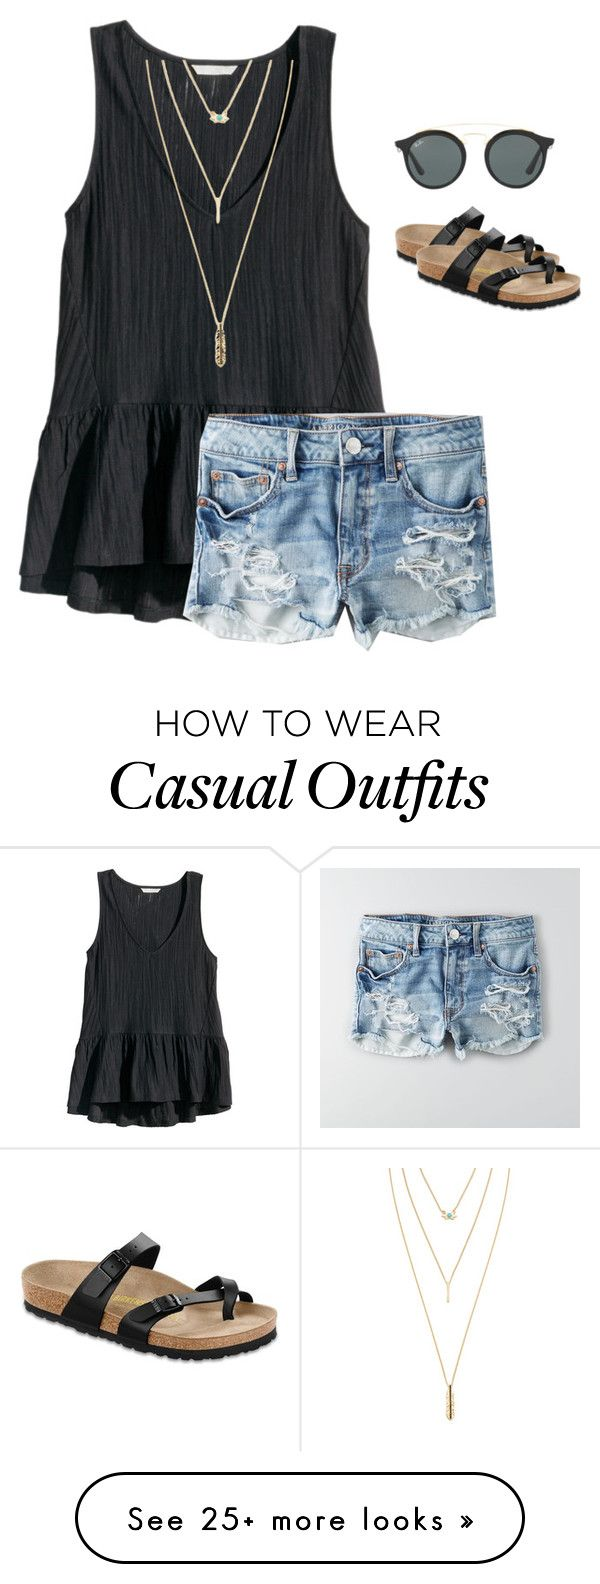 Casual  Cute by gracerose1130 on Polyvore featuring HM, American Eagle Outfitters, Jules Smith, Birkenstock, Ray-Ban, RayBans and birkenstocks